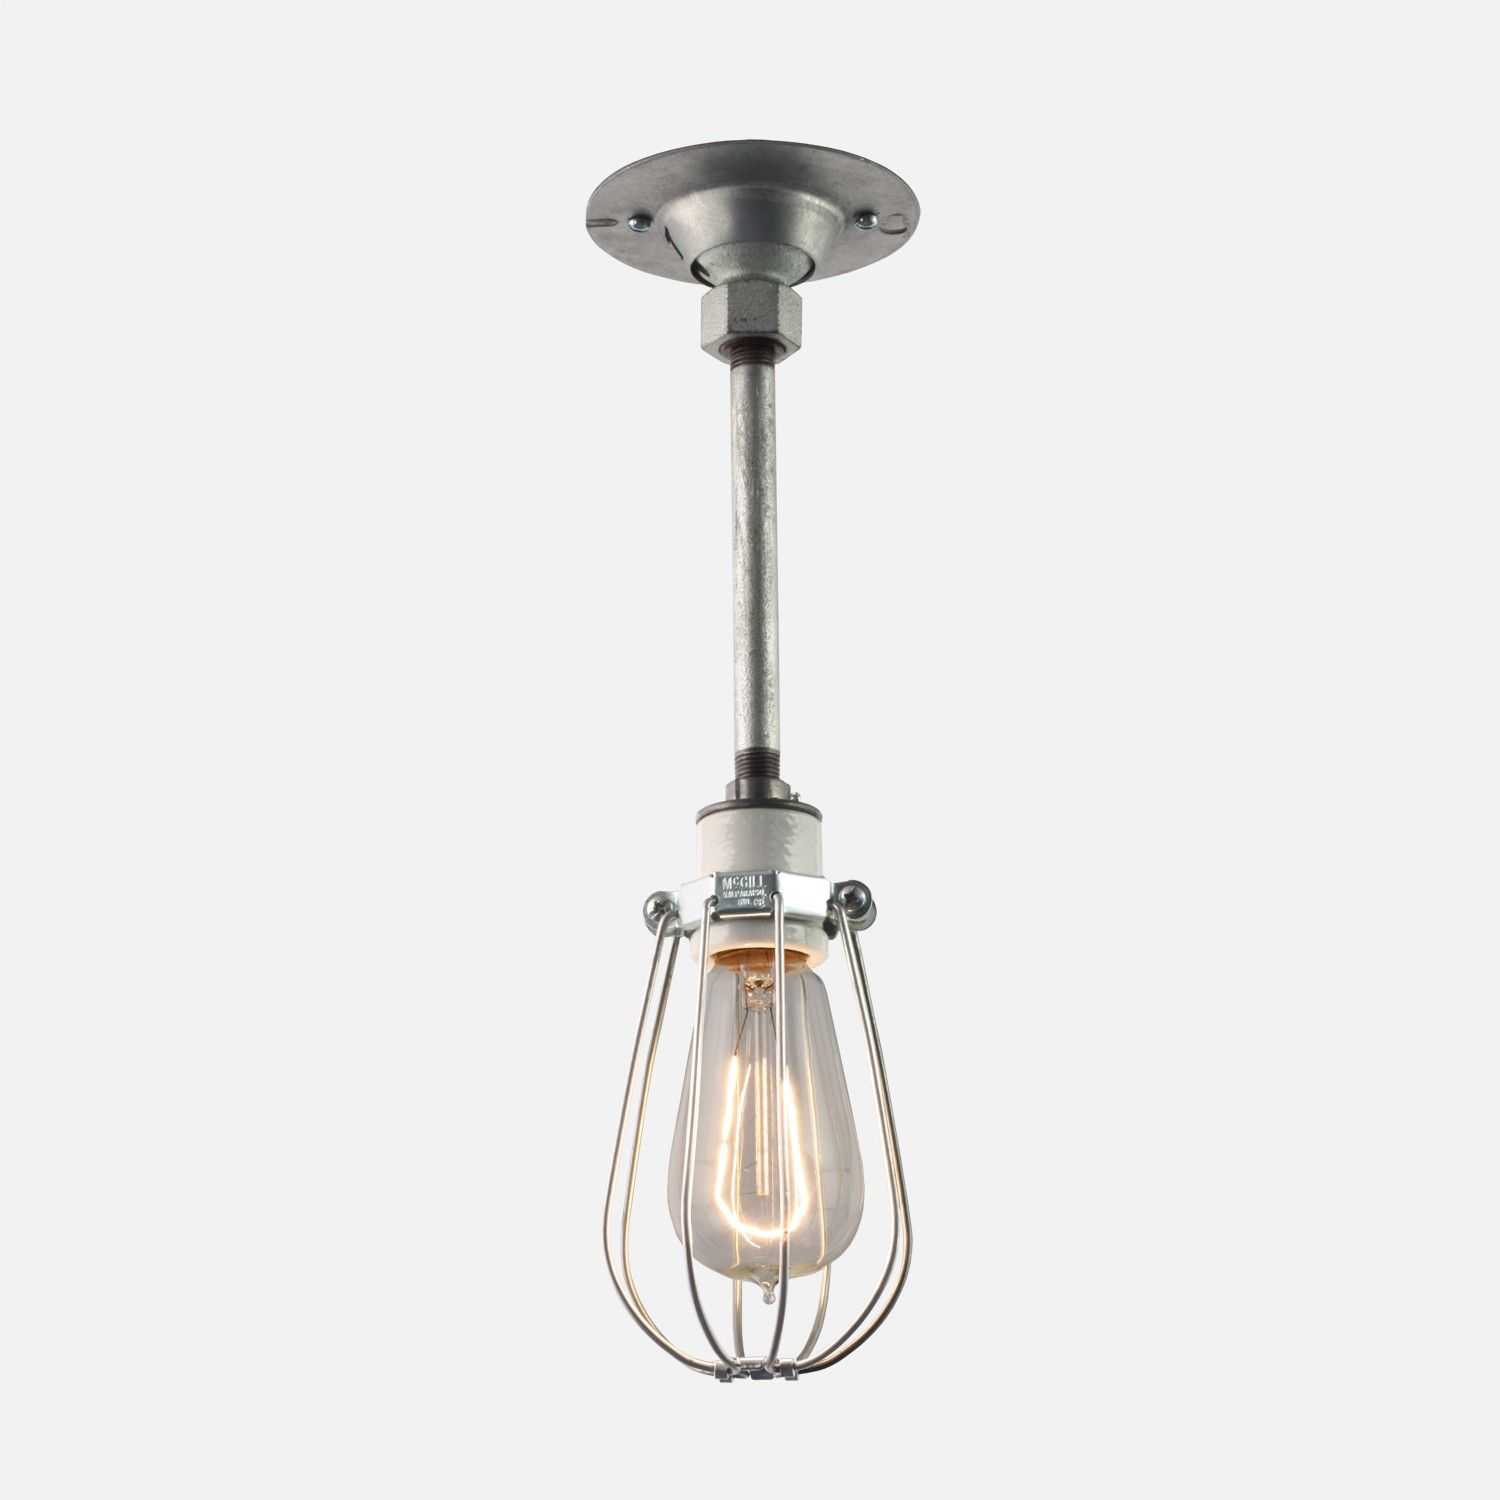 Lighting schoolhouse electric pendant lighting and lights azusa pendant light fixture schoolhouse electric supply arubaitofo Gallery